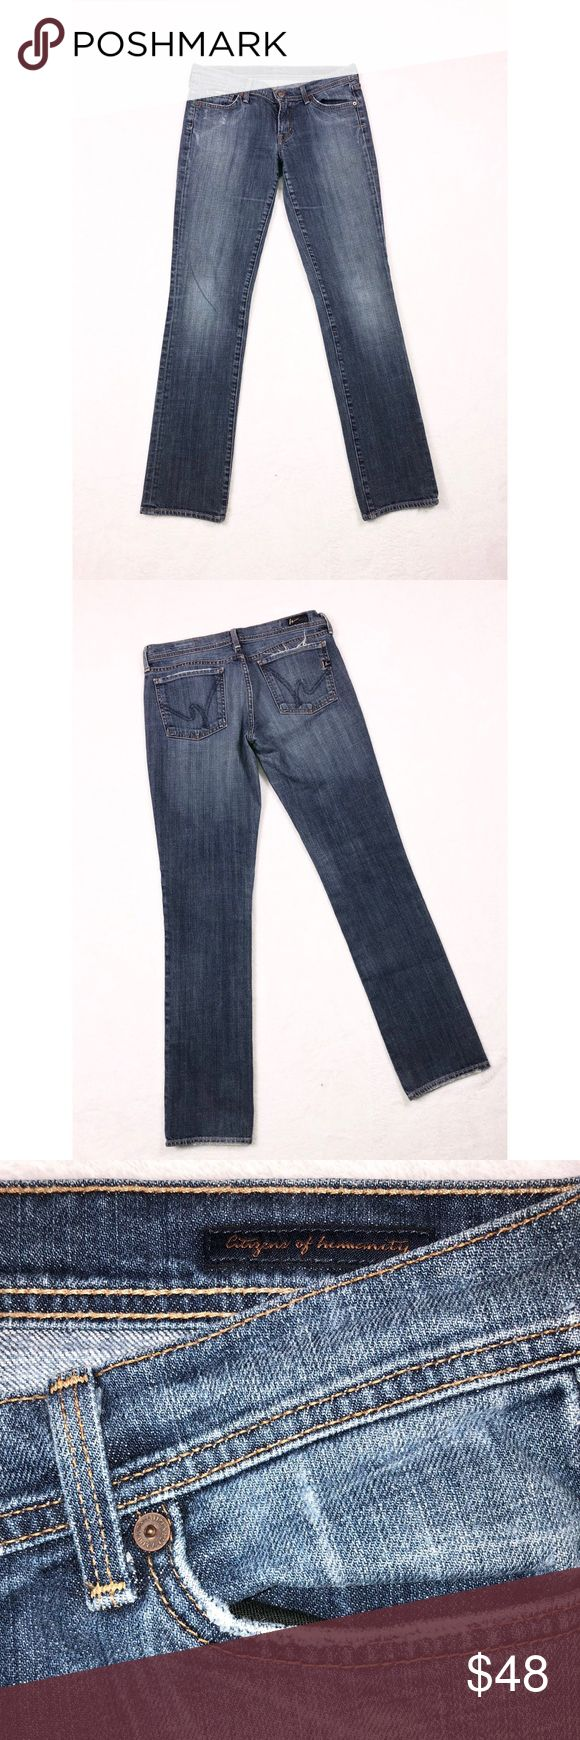 🔥SALE🔥 CITIZENS OF HUMANITY JEANS •Citizens of Humanity Straight Leg Low Waist Stretch Jeans• Size 30• Citizens Of Humanity Jeans Straight Leg